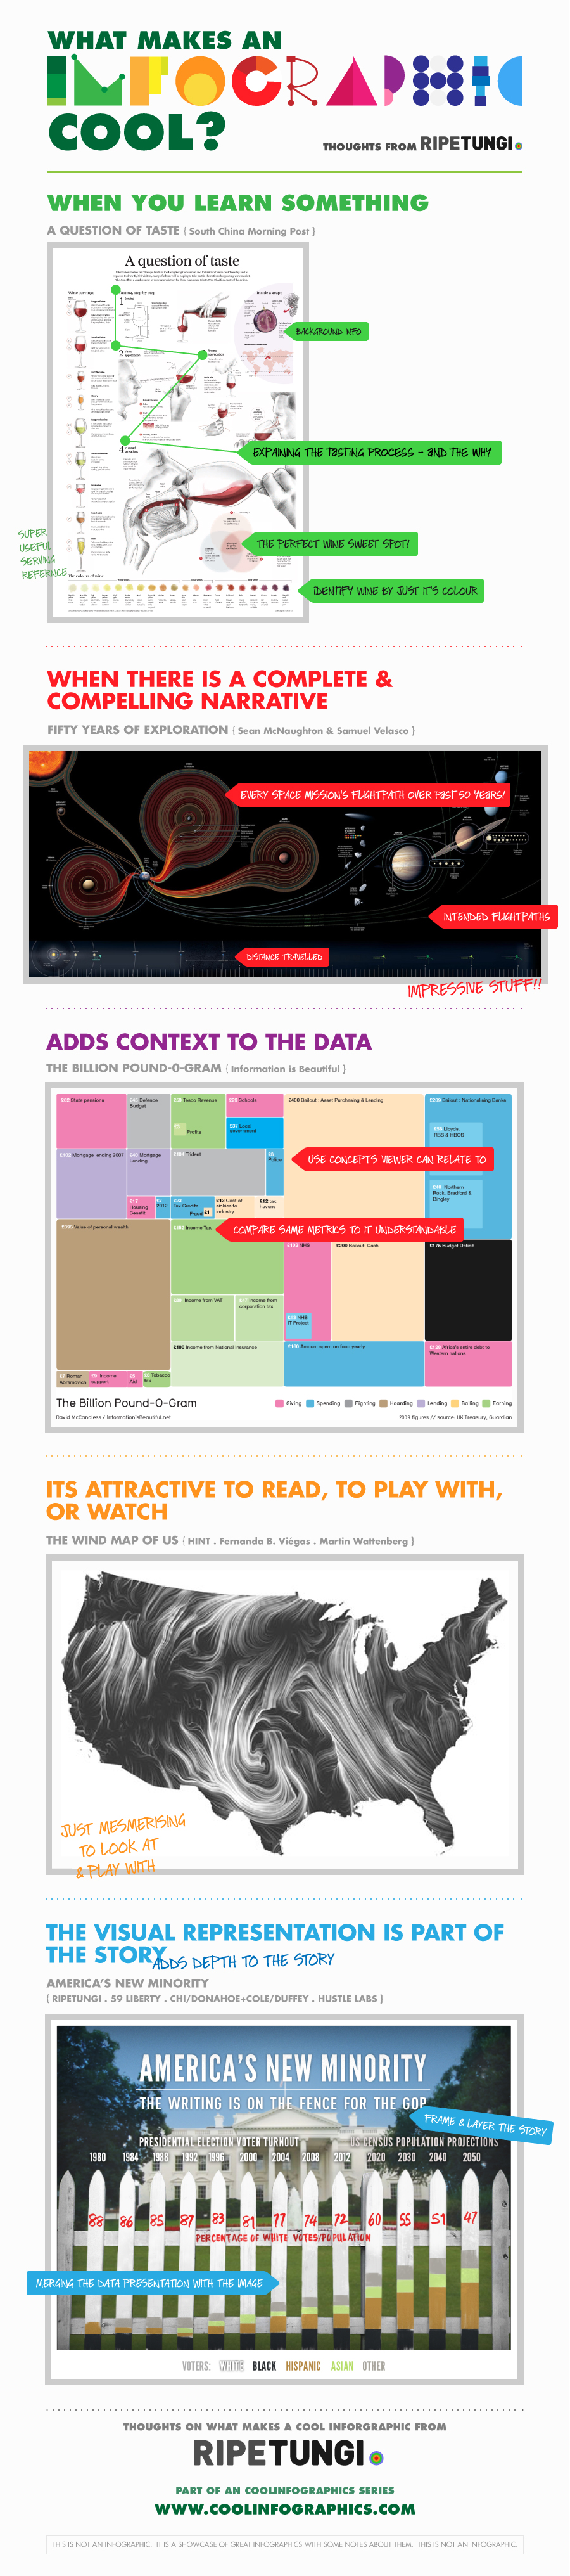 what-makes-an-infographic-cool.jpg